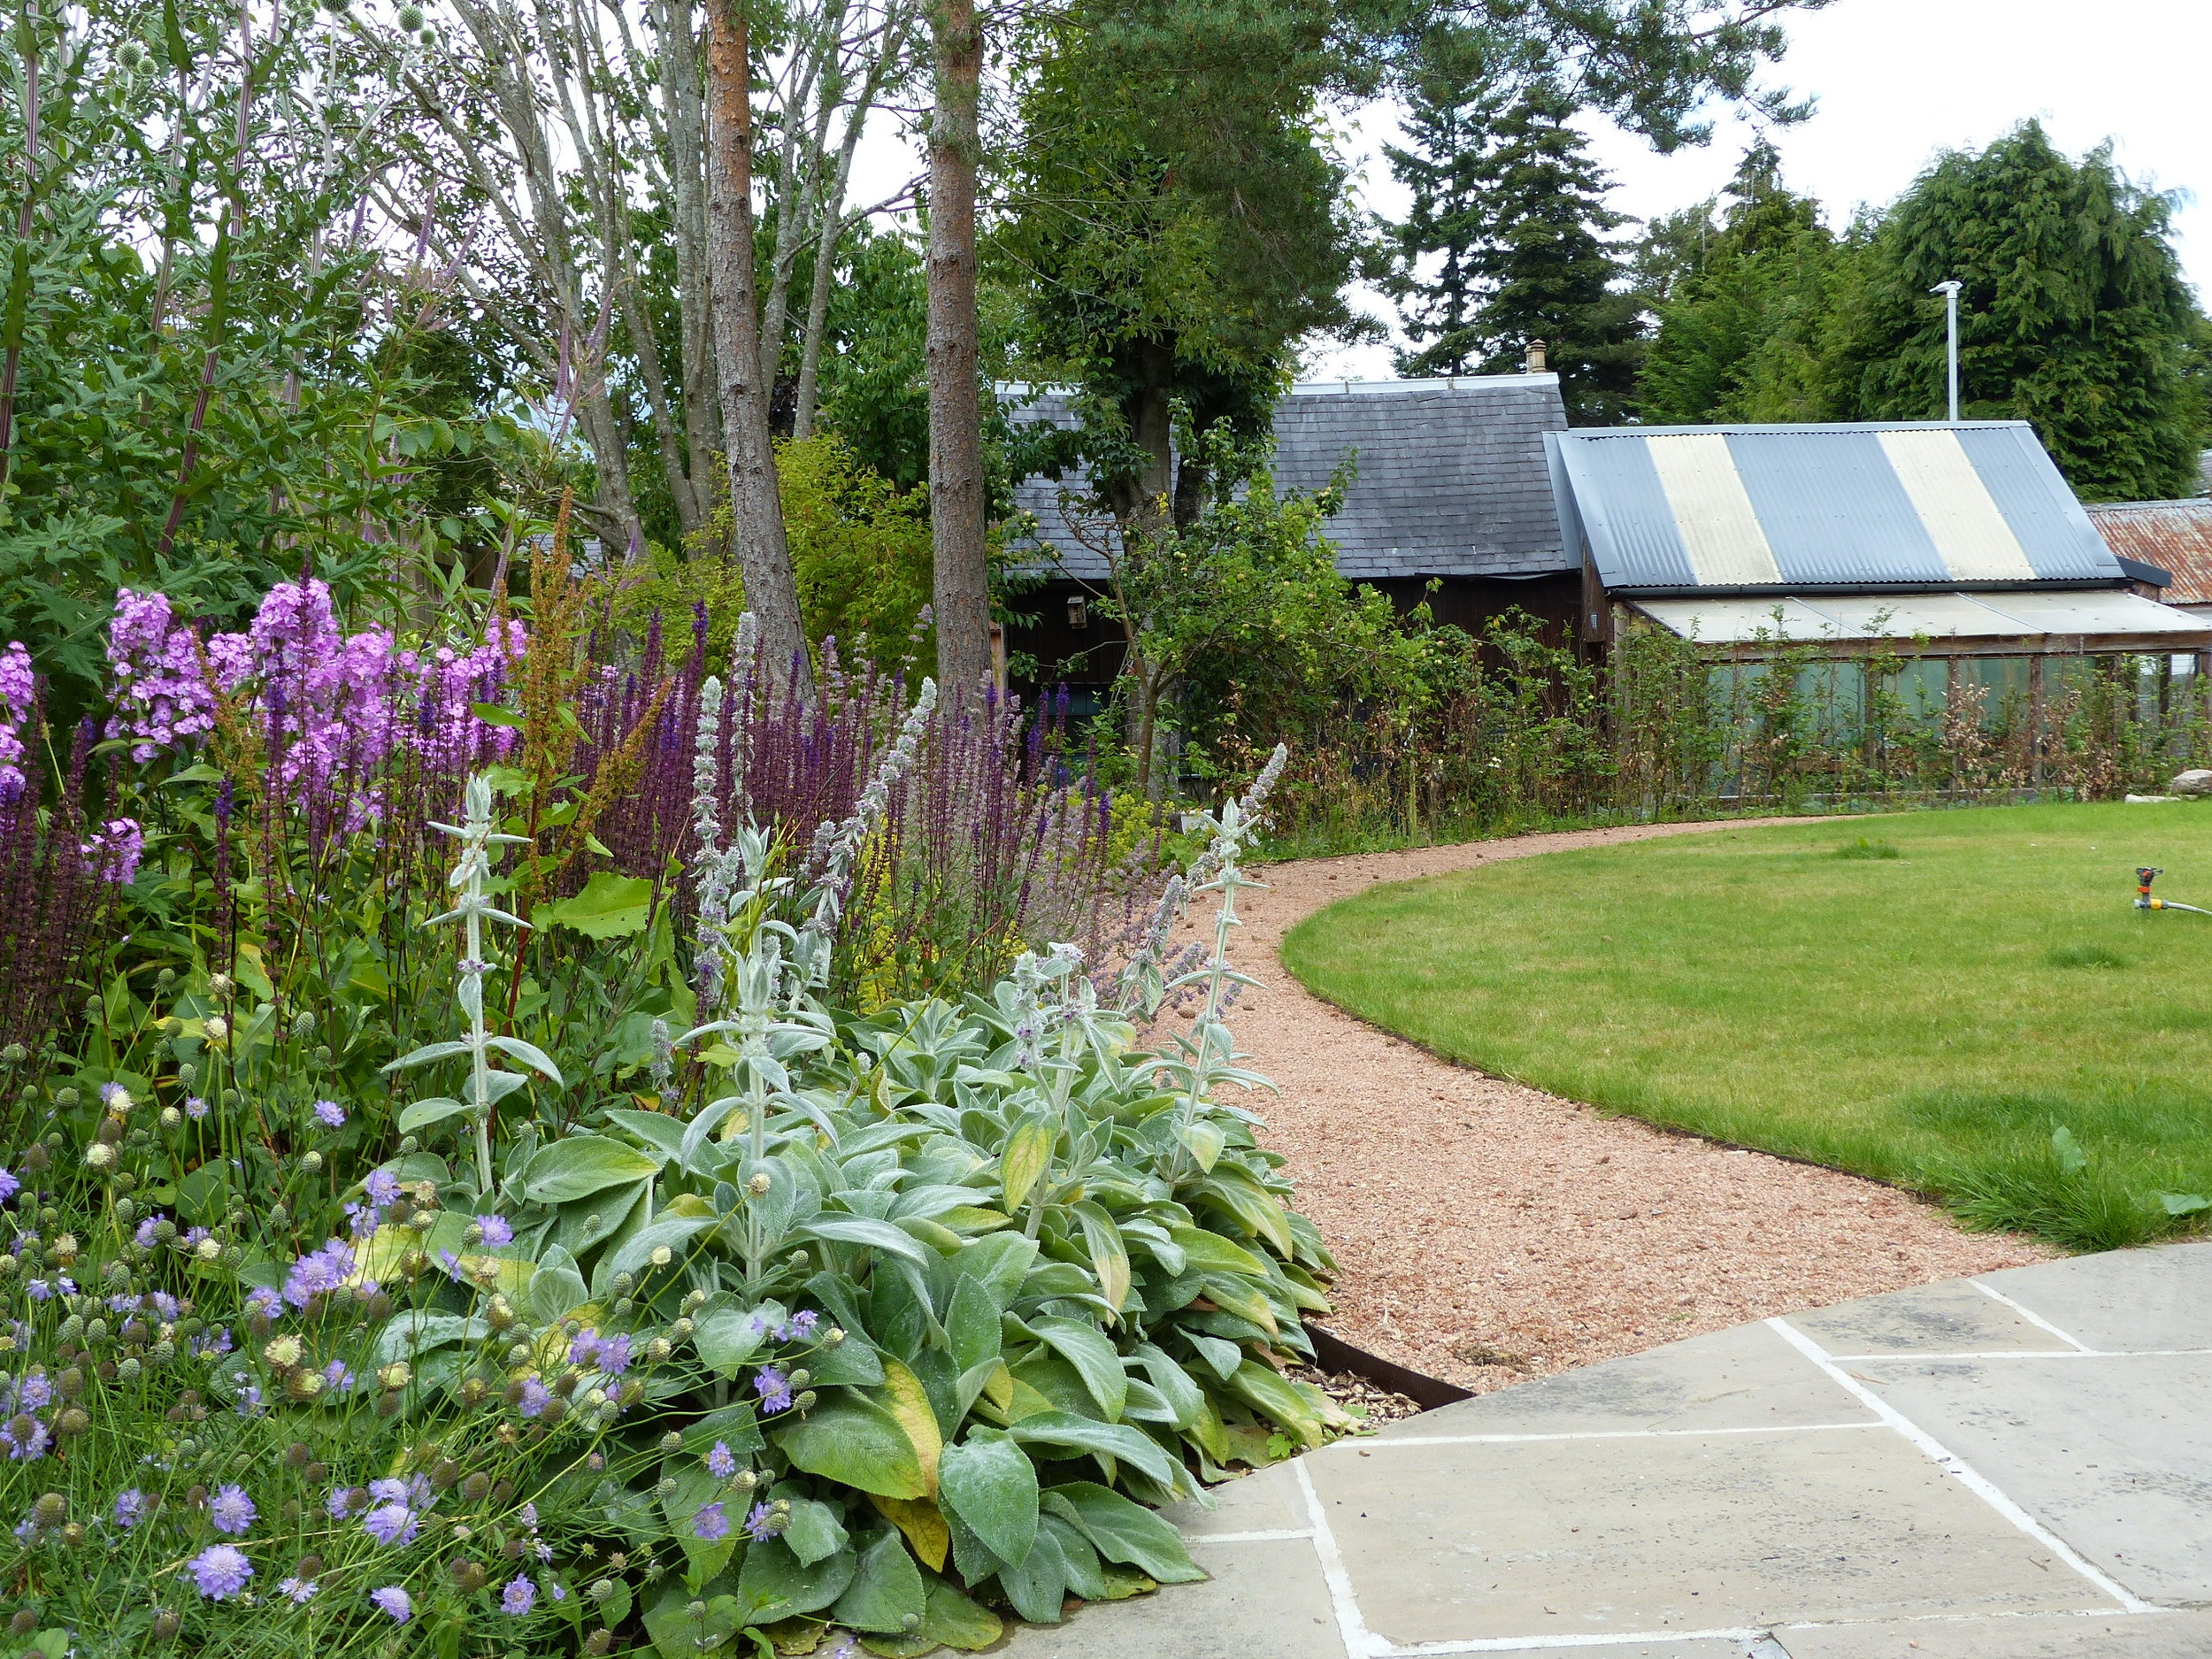 Curved gravel path and perennial plants